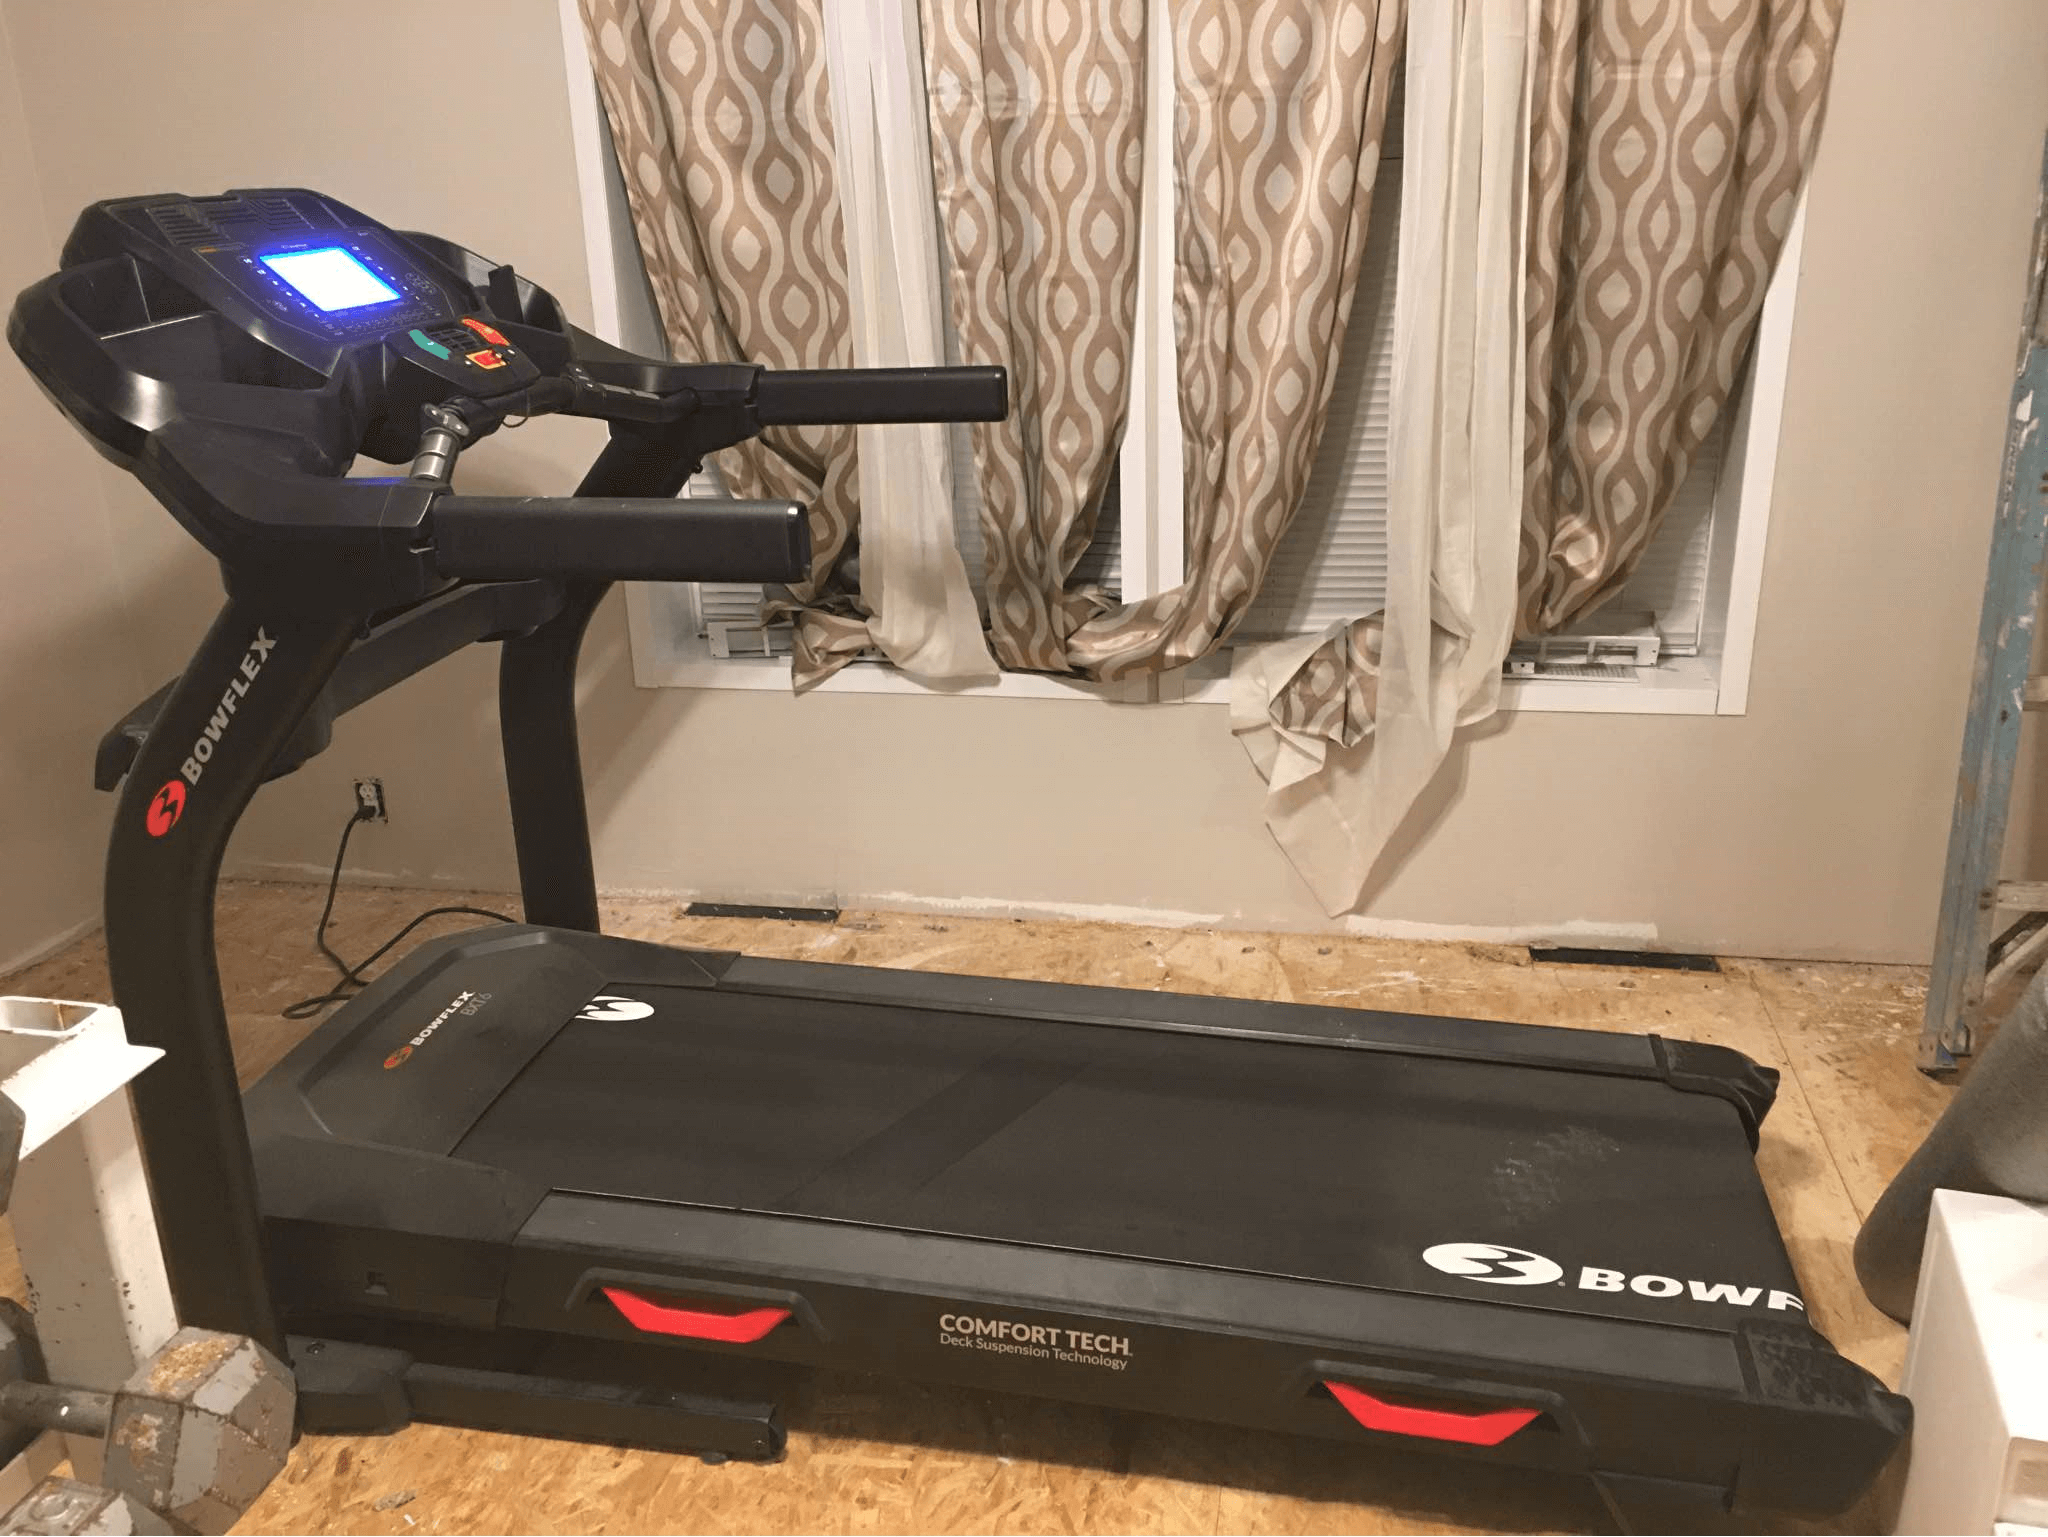 A Quick Overview Of Bowflex BXT6, its specs and features